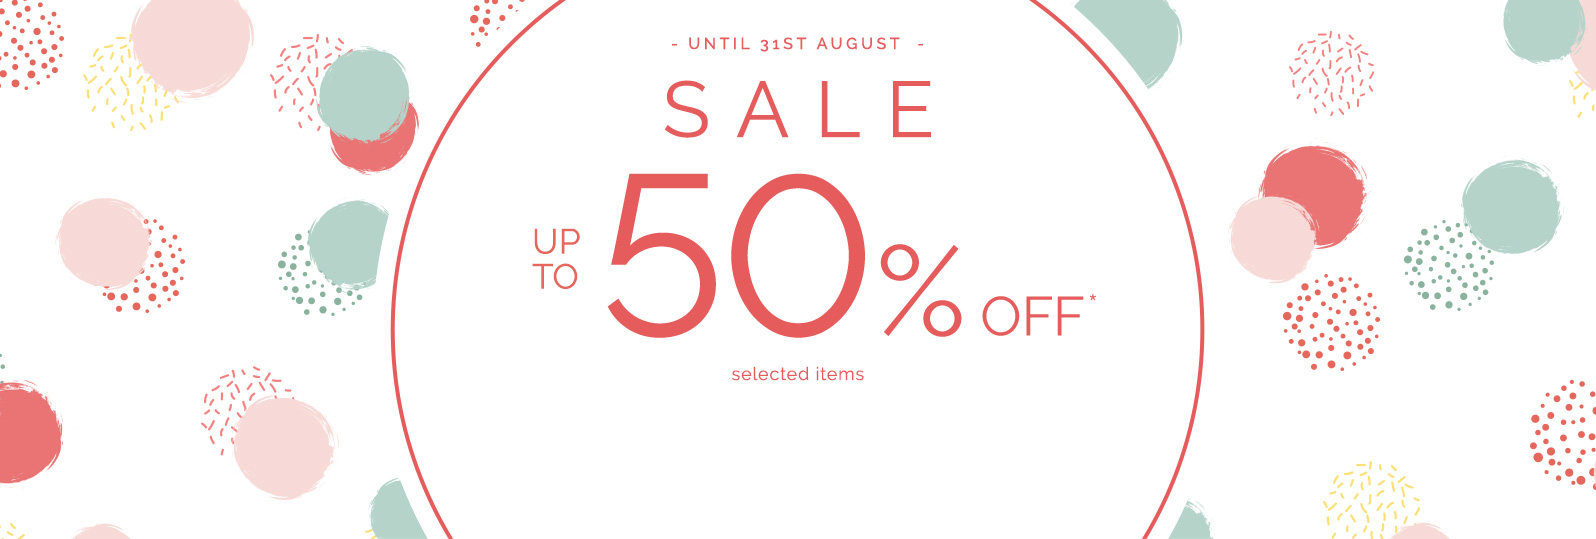 Sale - Up to 50%off* selected items